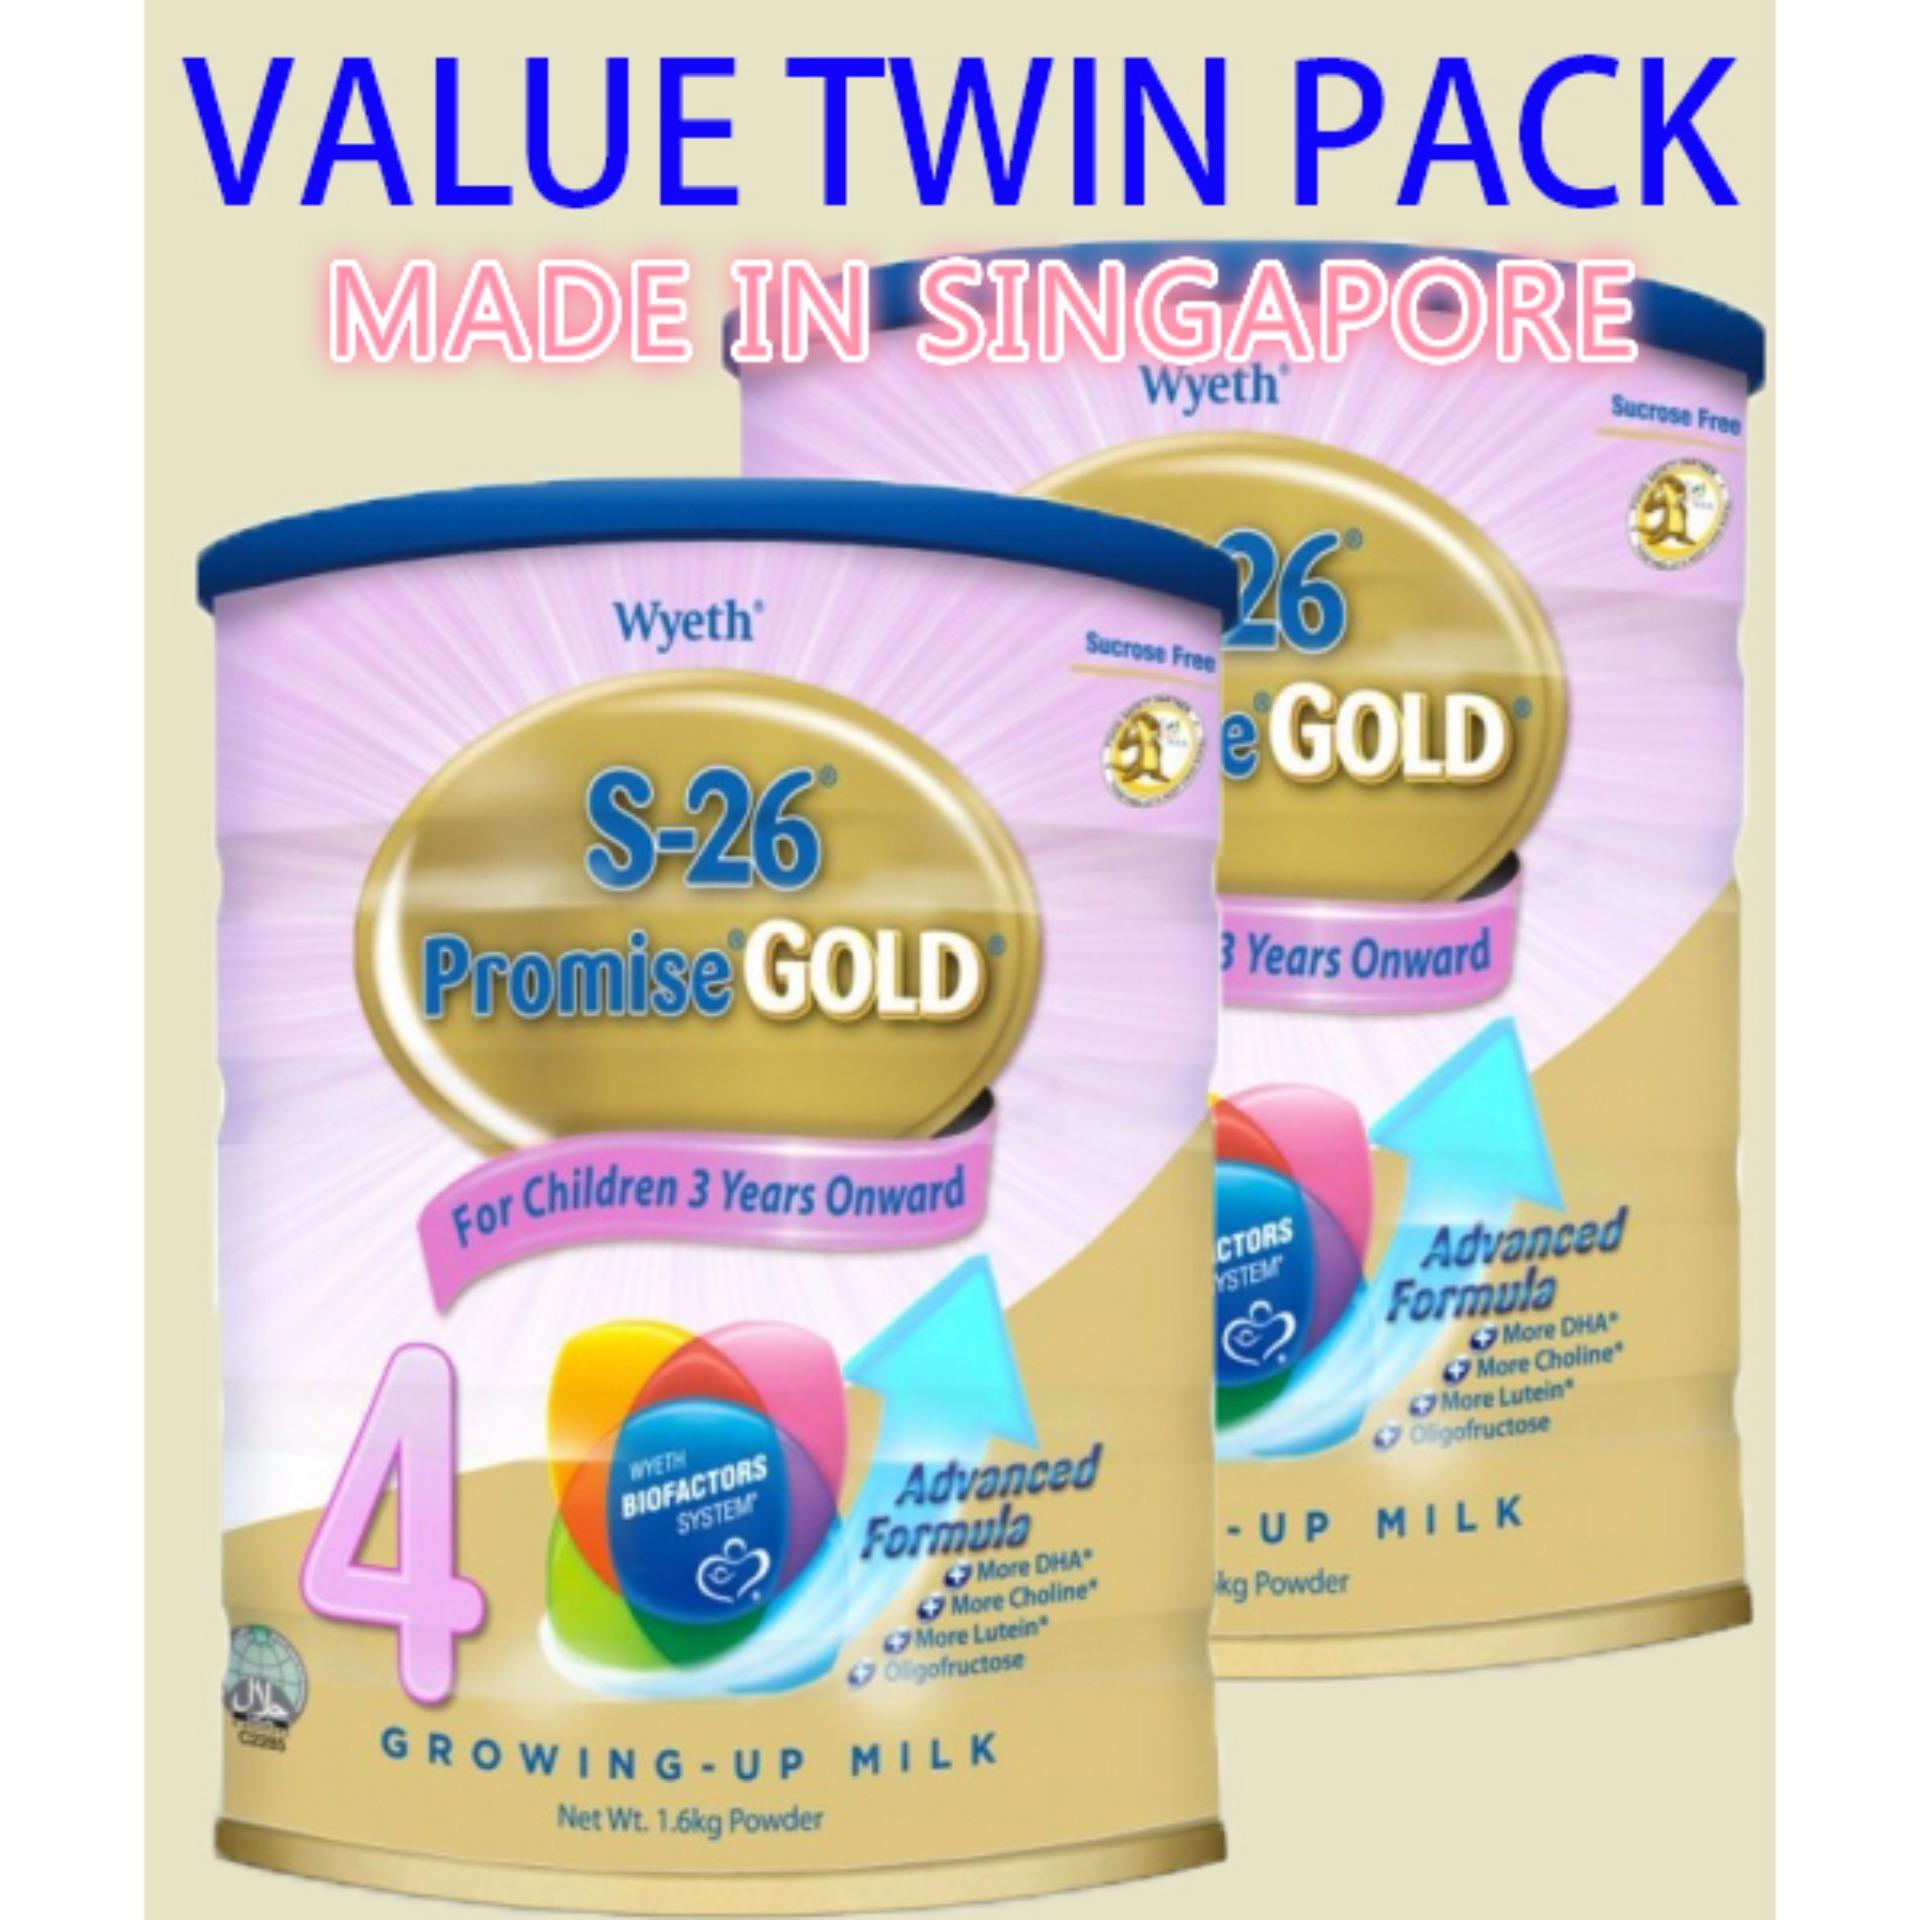 Harga Jual Obral Wyeth S 26 Promise Gold Tahap 4 Vanila 900gr Promil 2 Kemasan Baru Buy Sell Cheapest 2017 New Best Quality Product Deals